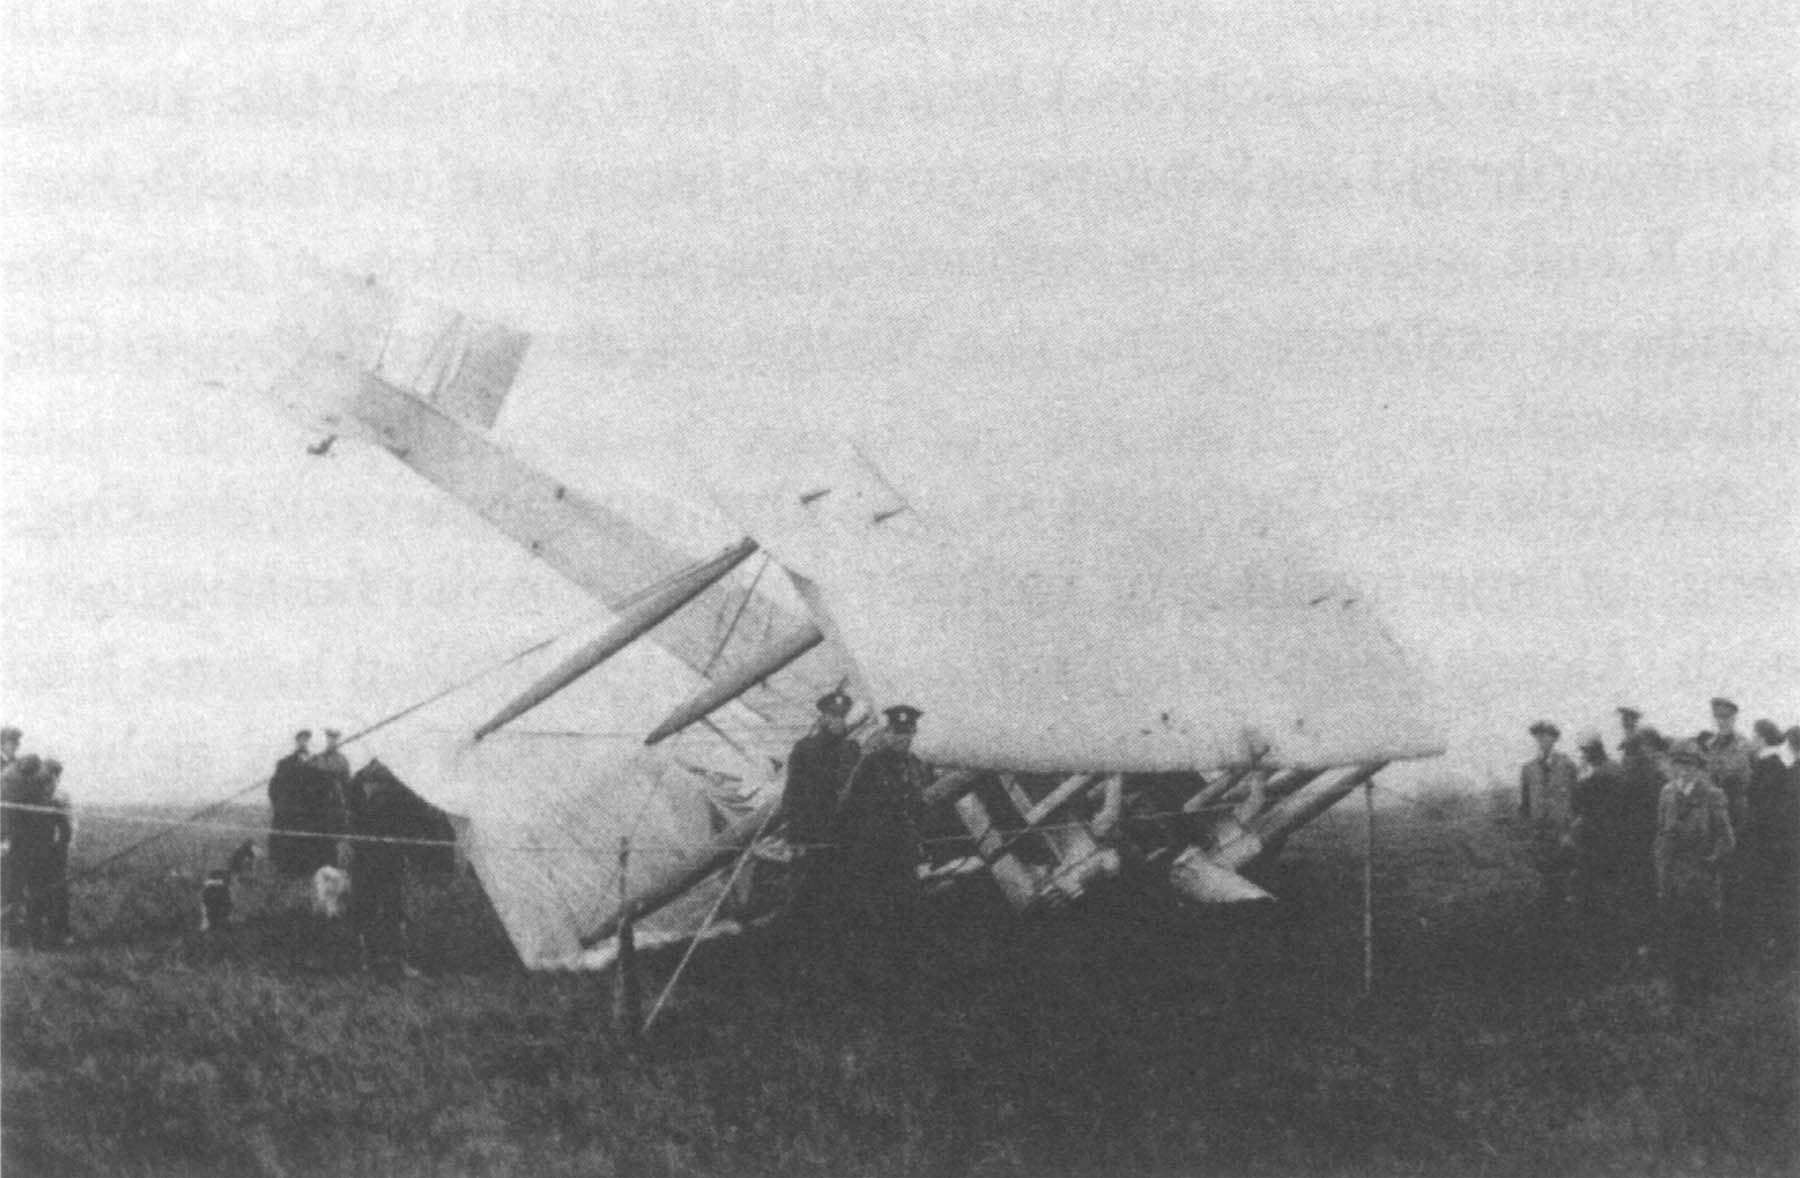 a black and white photo of a crash landed biplane with police and people stood about